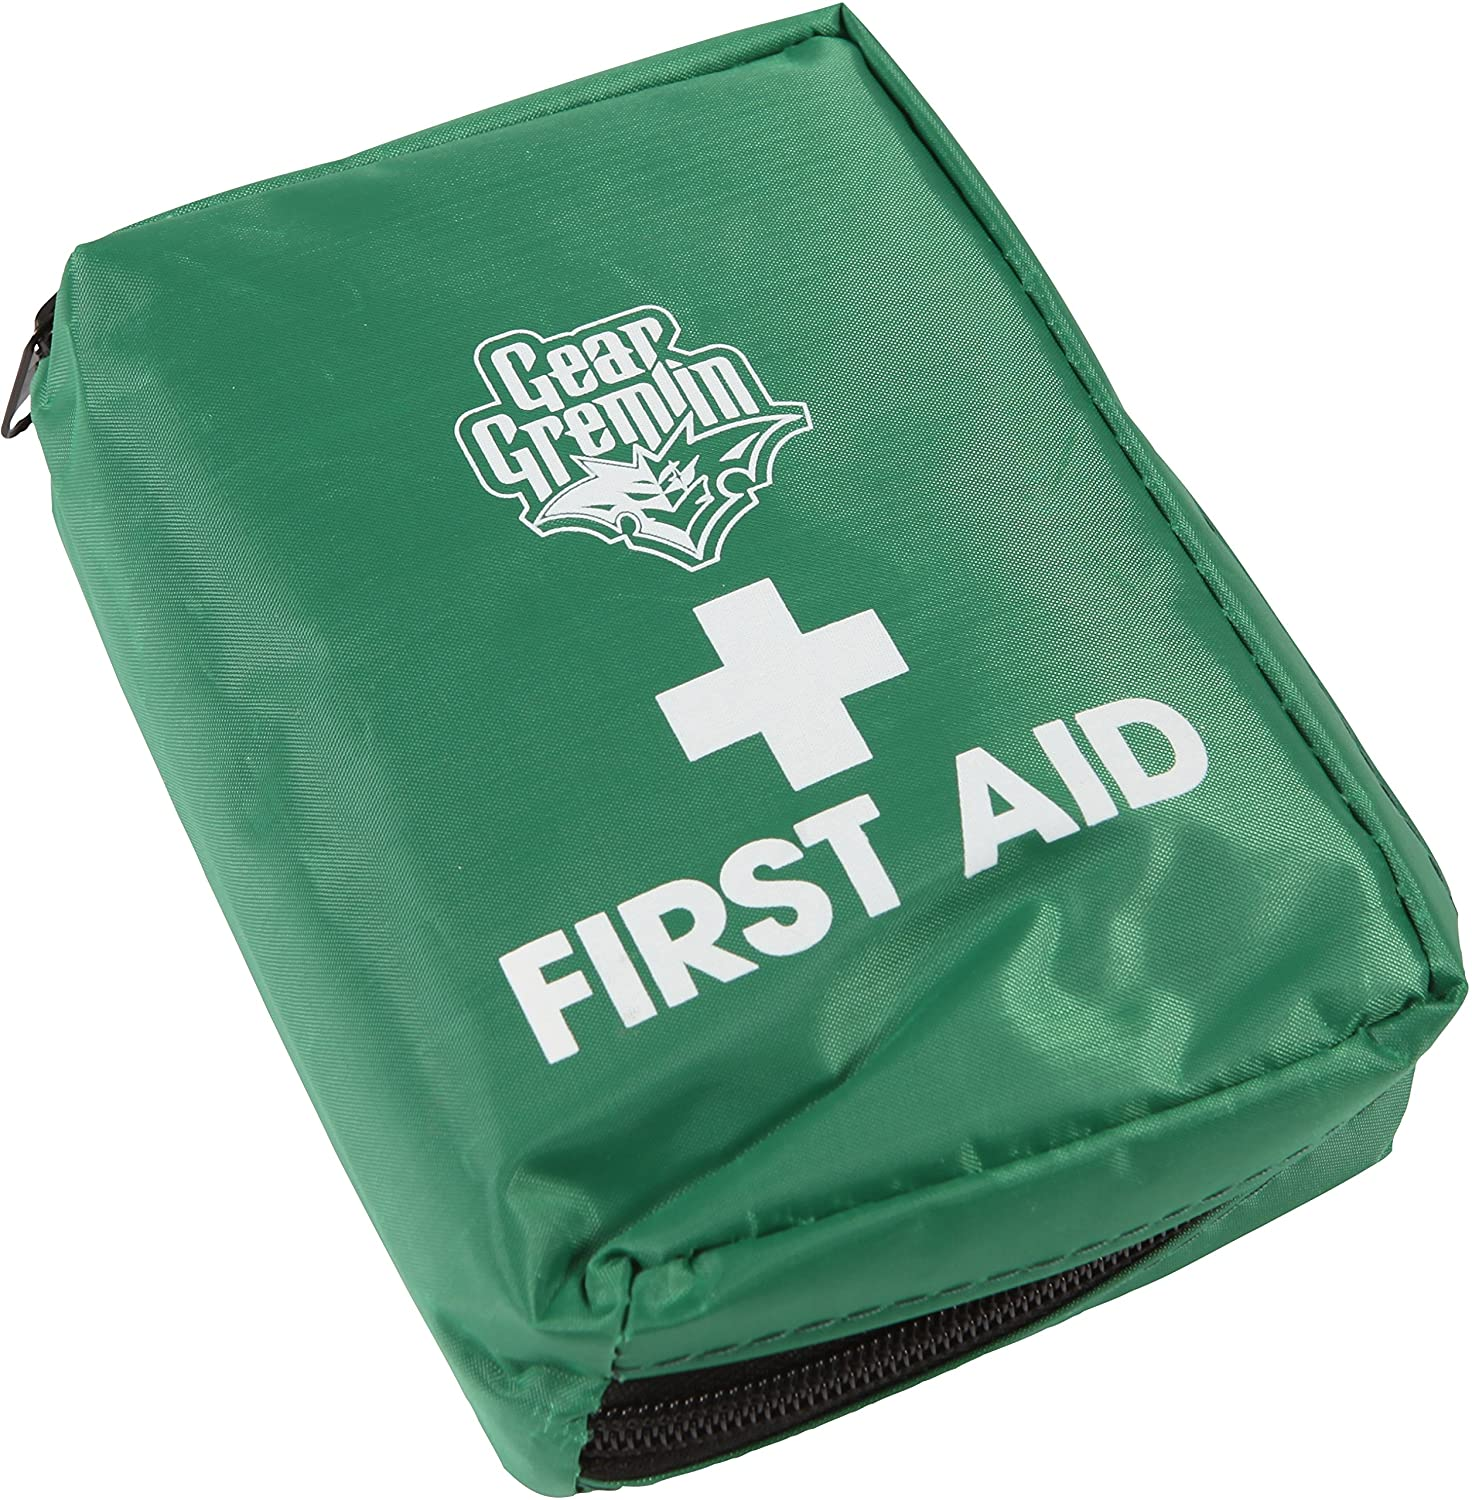 Gear Gremlin GG970 First Aid Kit The Key Collection